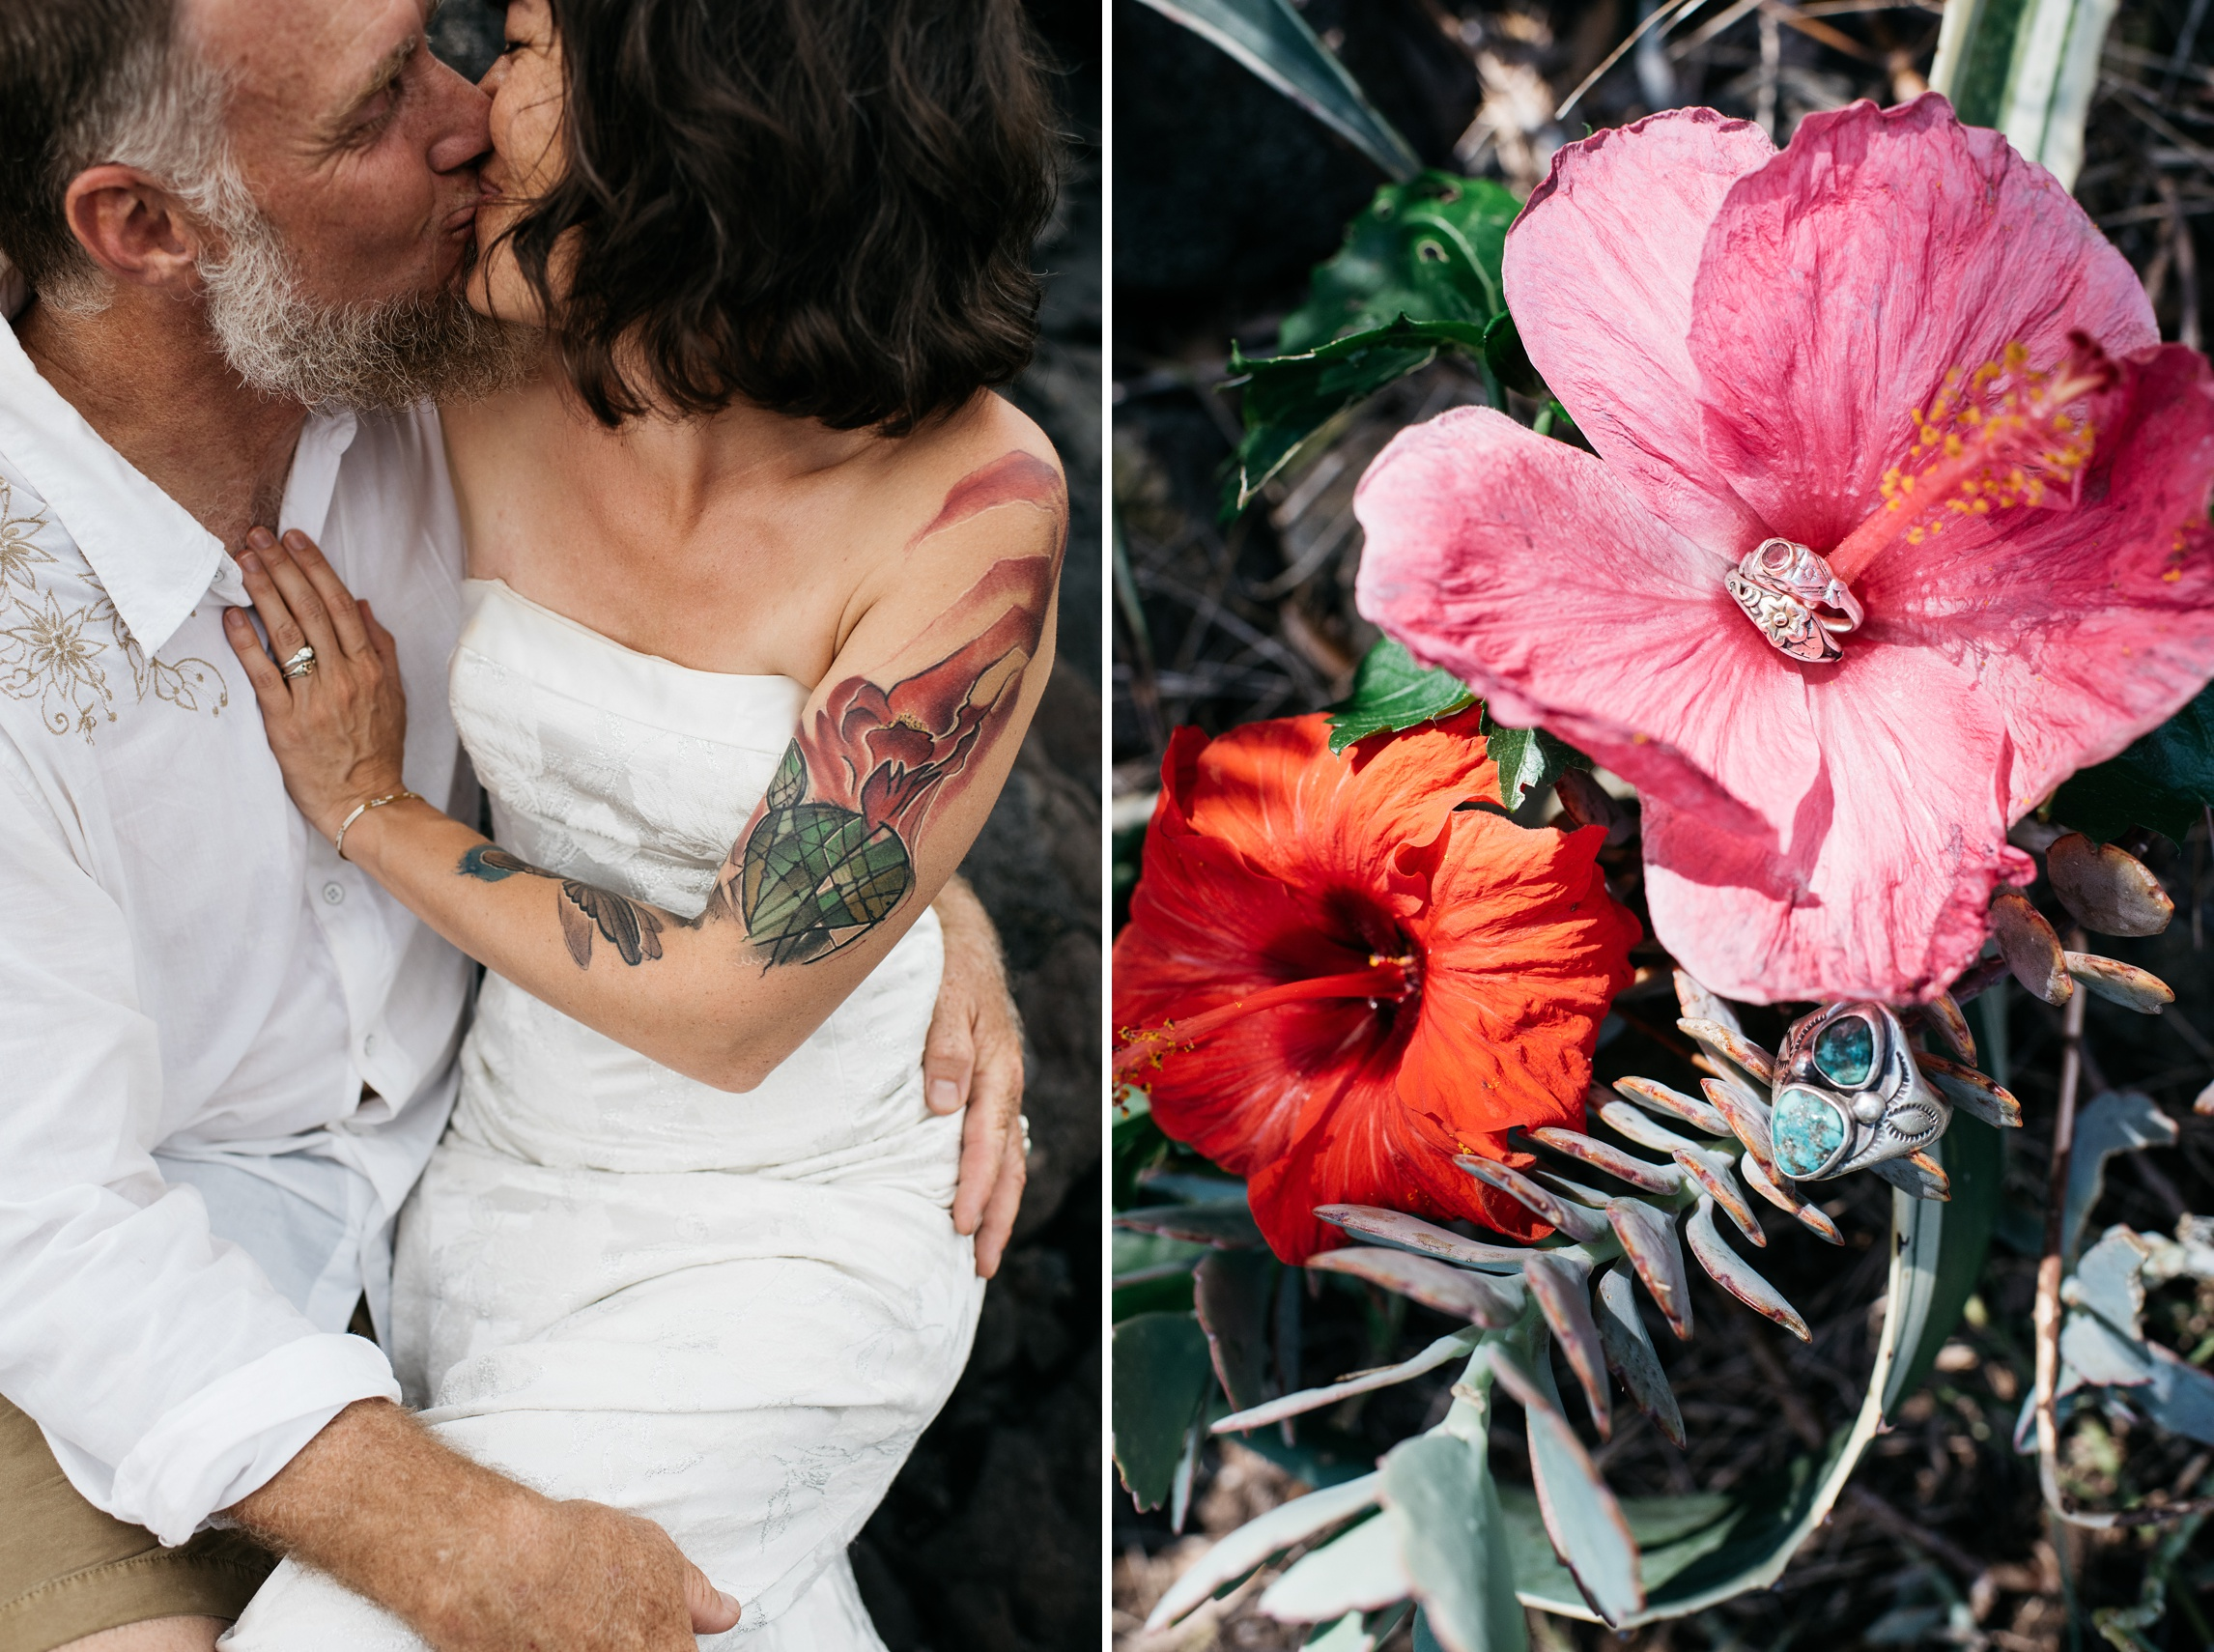 Dan and Maarit kiss on a beautiful lava beach. Dan and Maarits' wedding rings on a tropical flower near Naalehu, Hawaii. Anniversary portraits by Sonja Salzburg of Sonja K Photography.